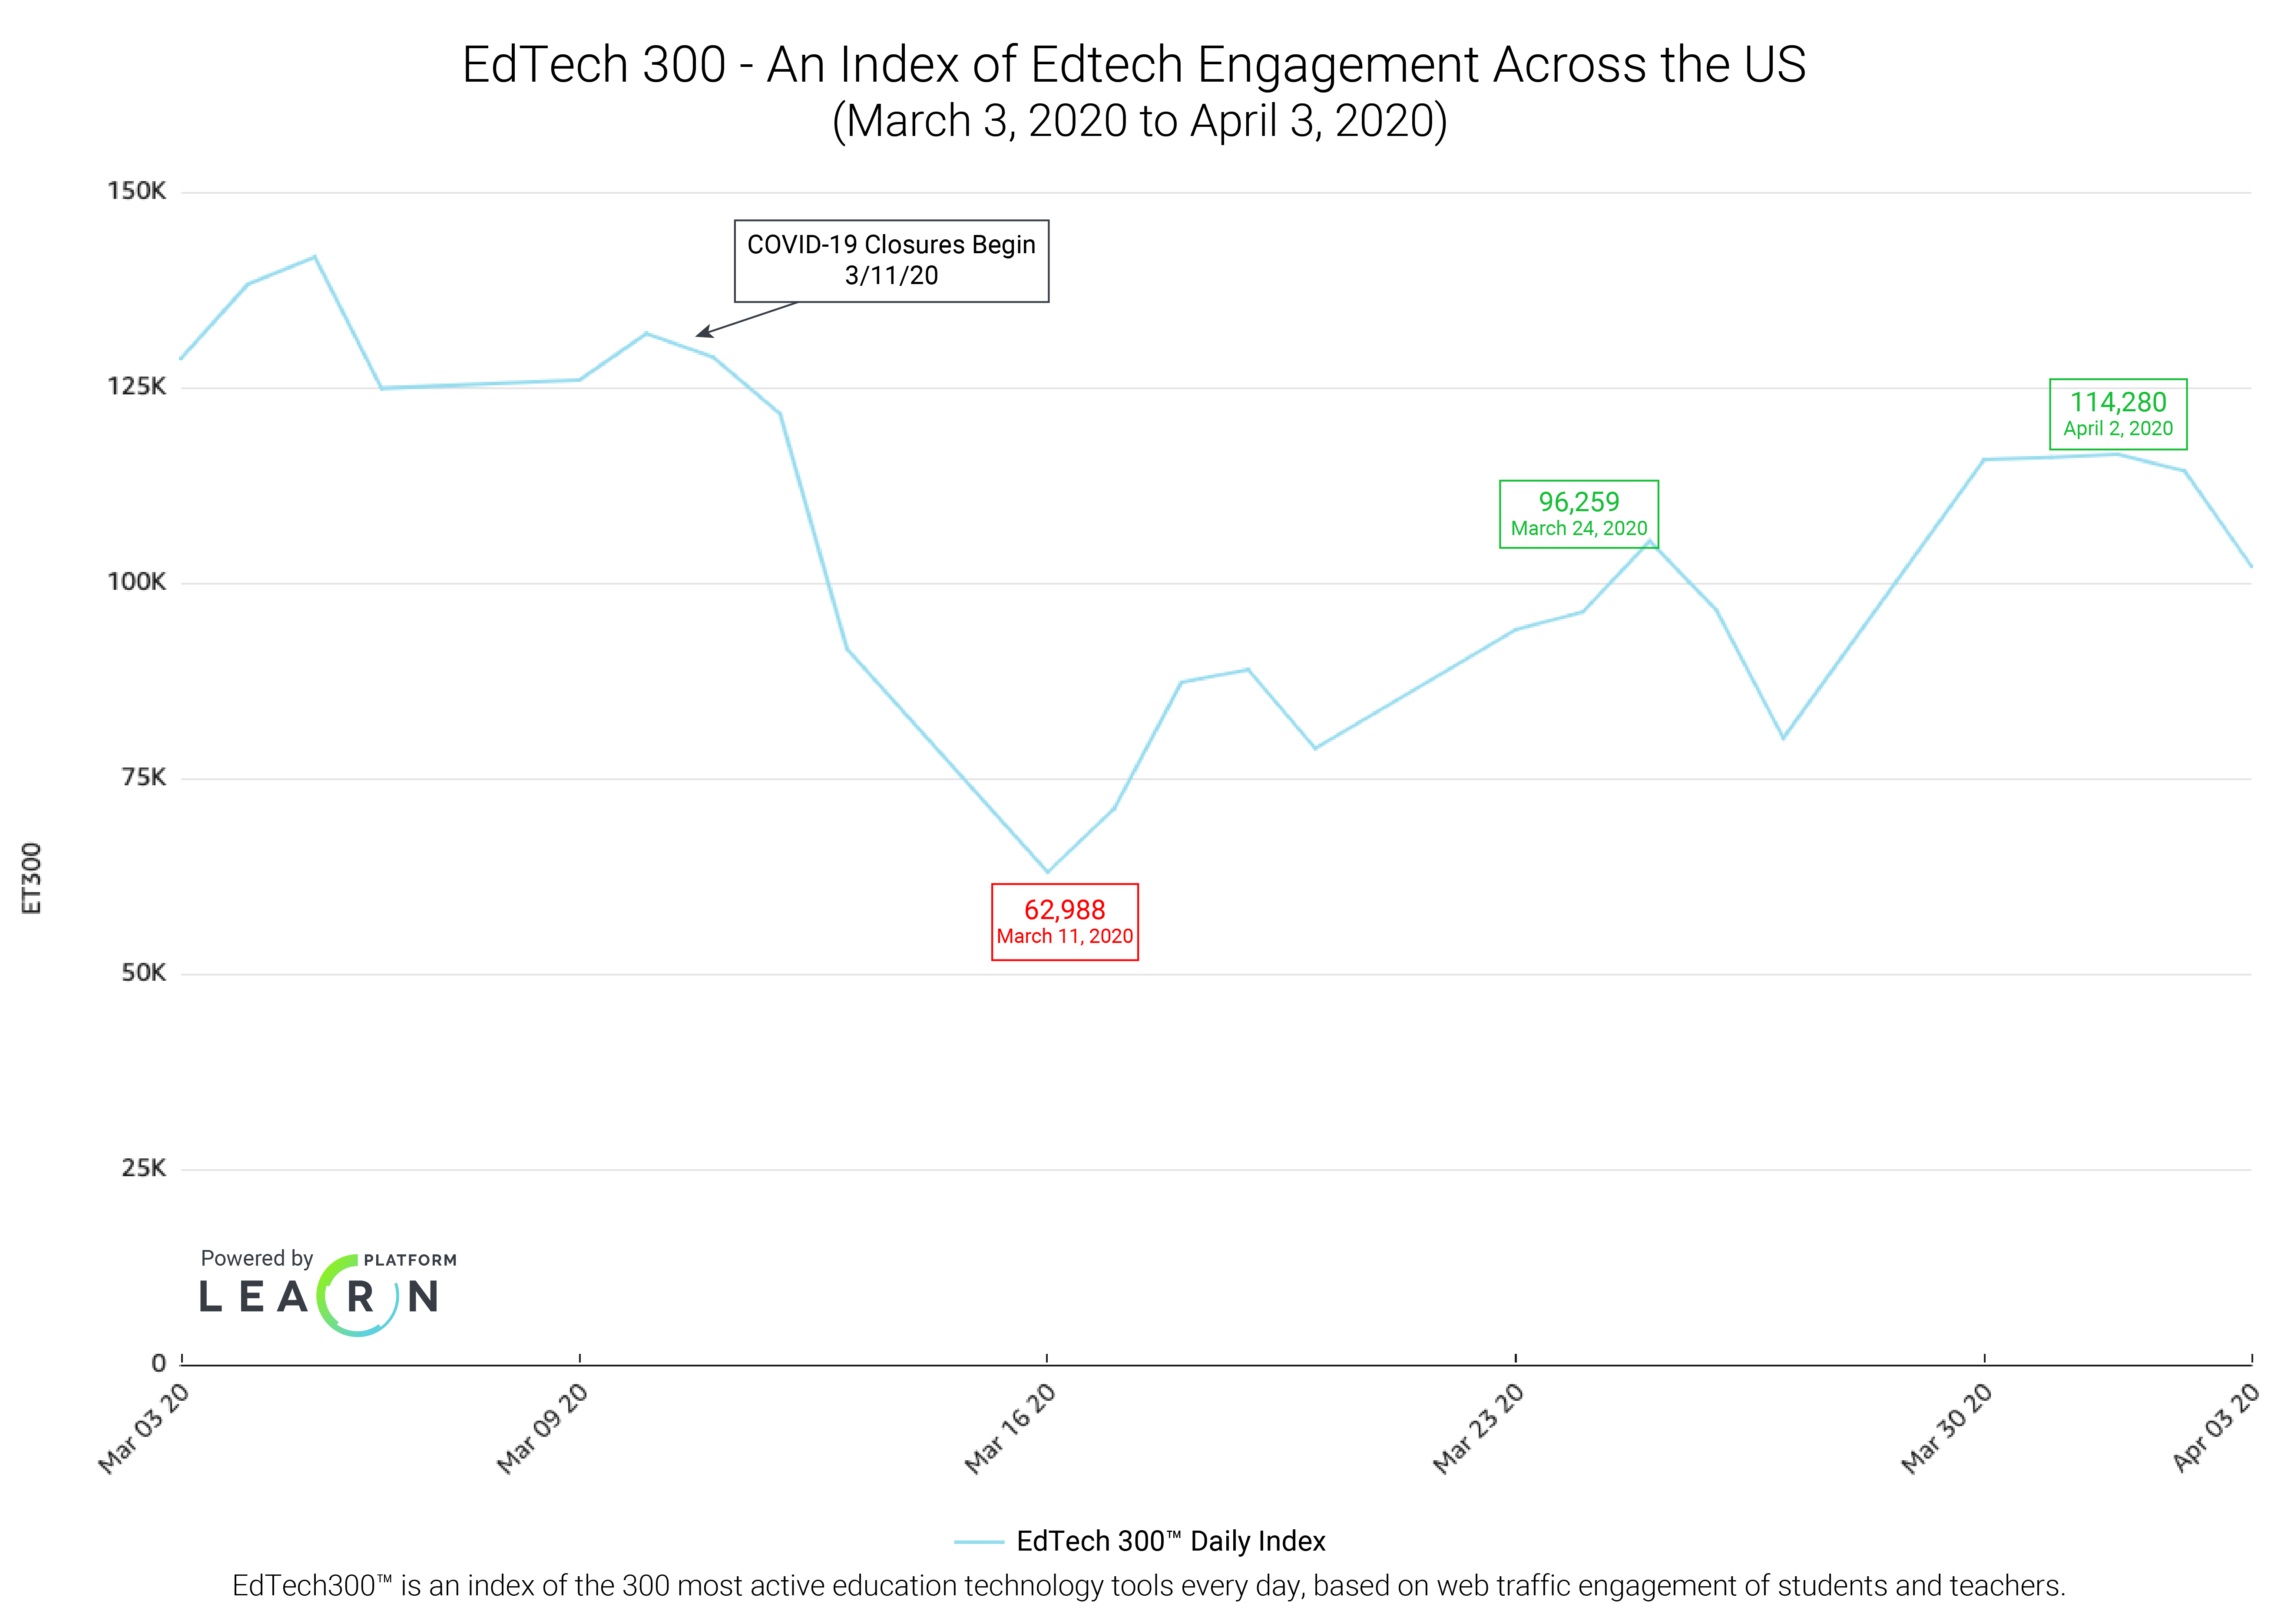 Figure: Index of Edtech Engagement Across the U.S. - March 3, 2020 to April 3, 2020